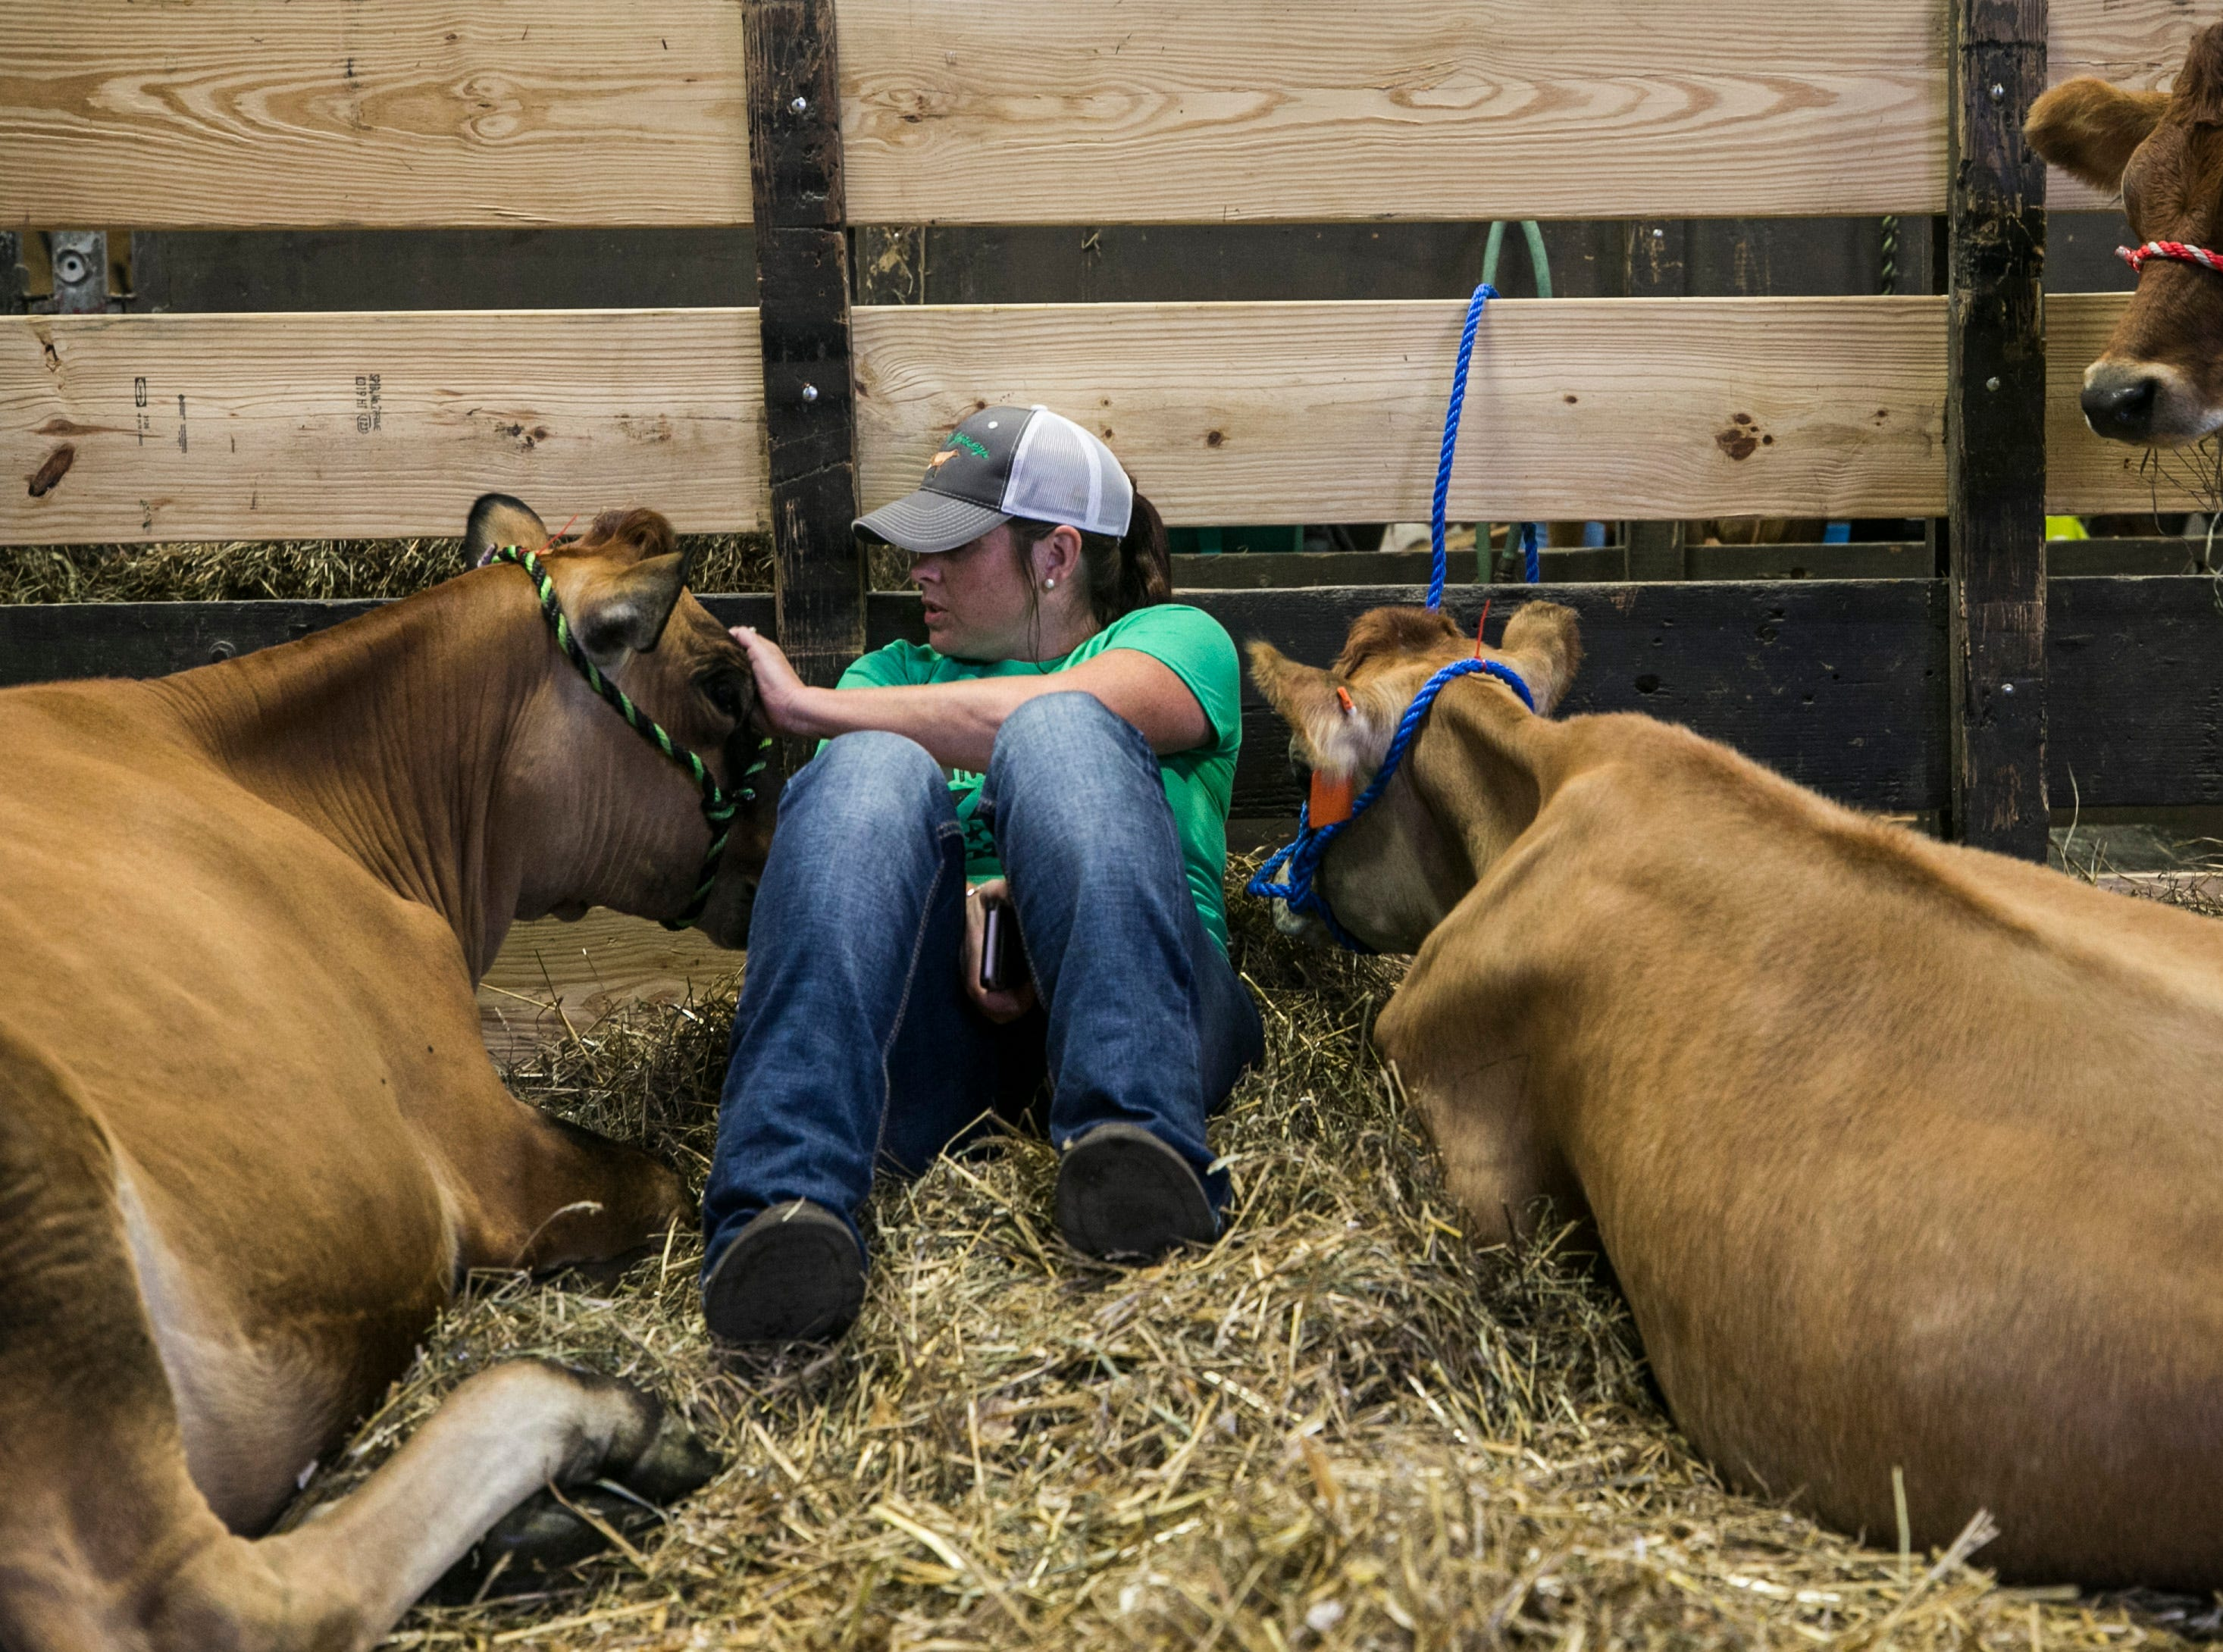 Alicia Butler of Spencer County gets a short break between her family's Jersey cows on the first day of the Kentucky State Fair. She said the cows love to snuggle.